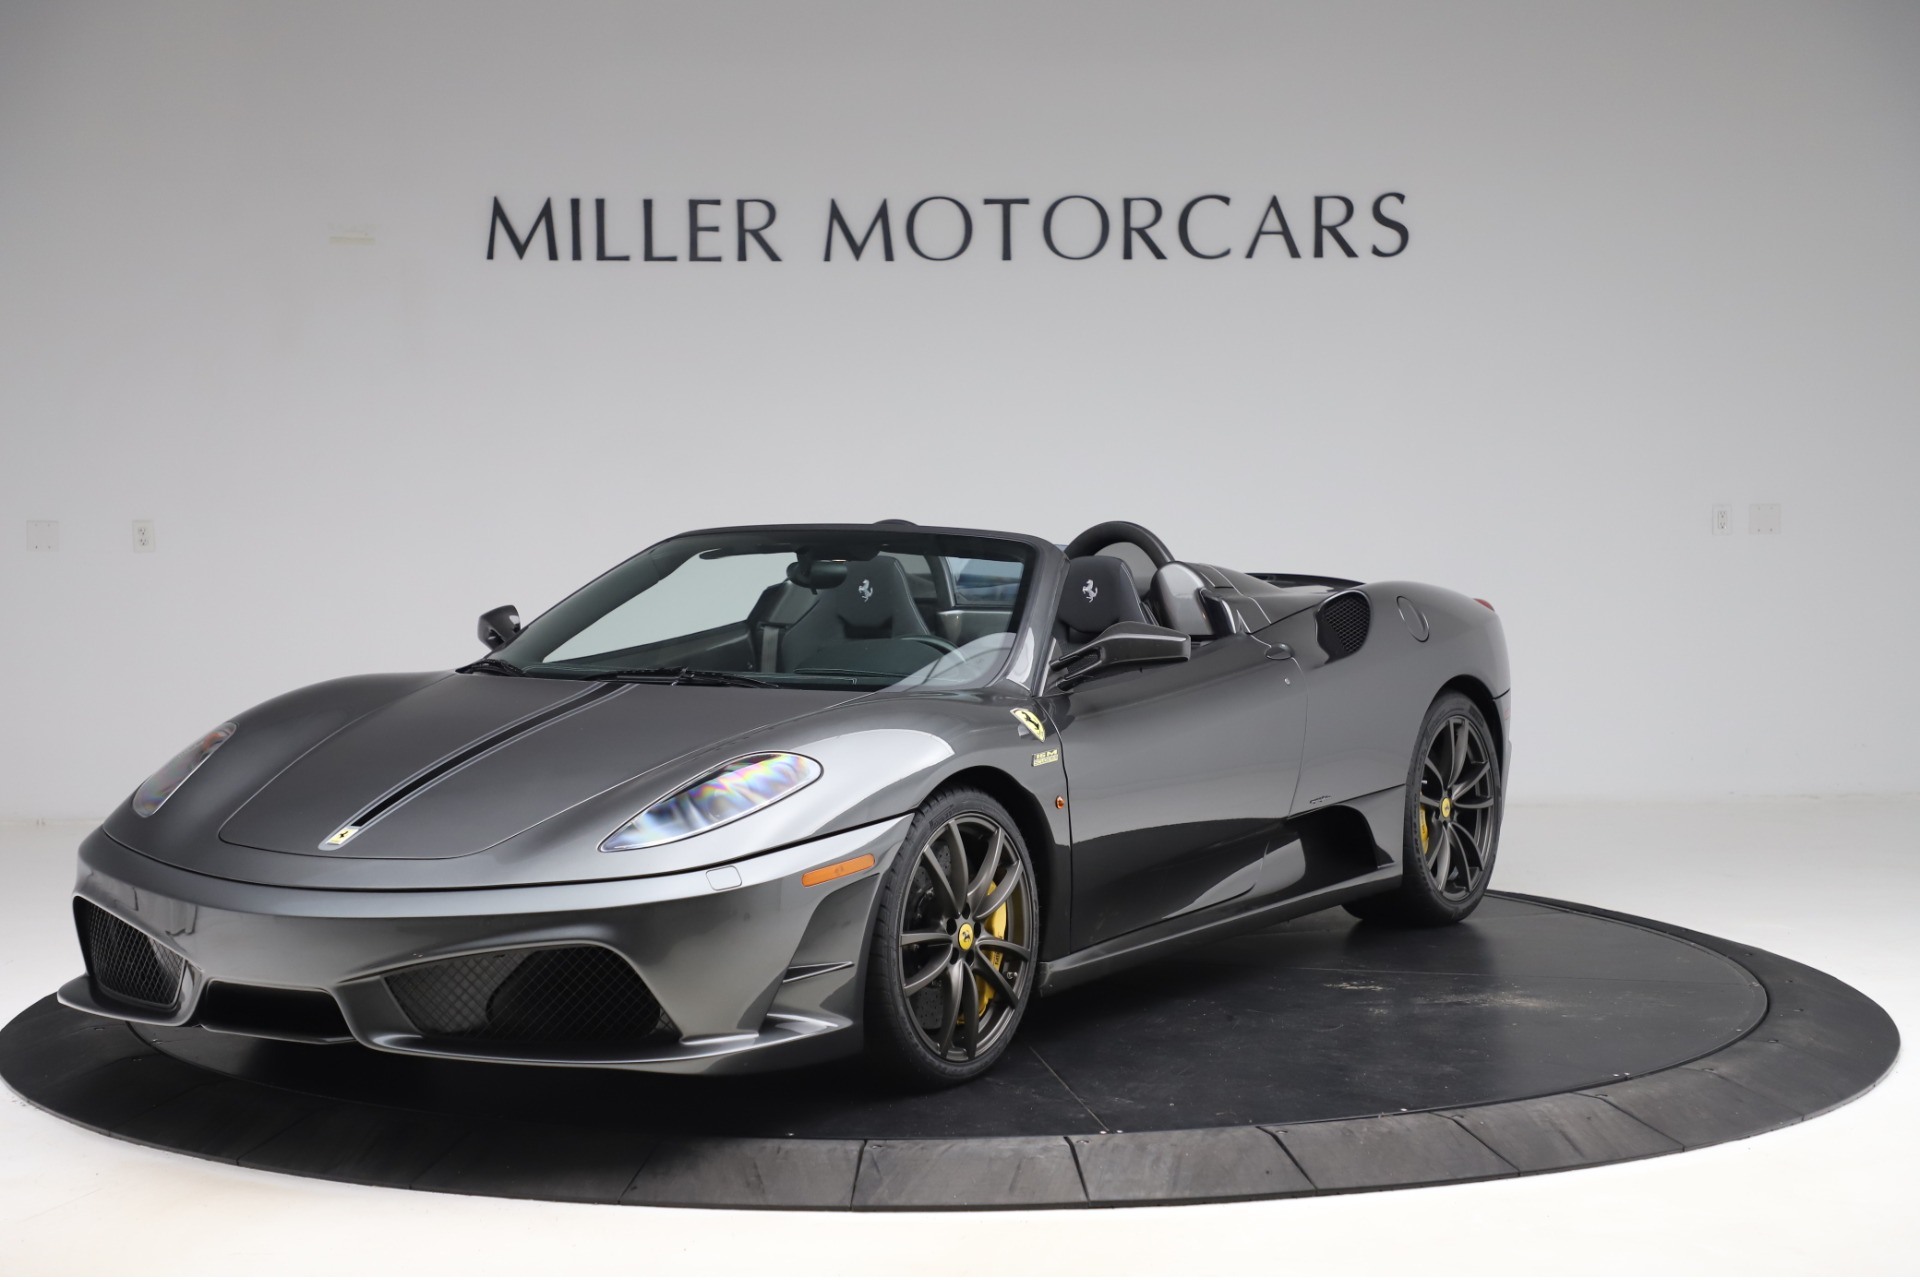 Used 2009 Ferrari 430 Scuderia Spider 16M for sale $325,900 at Alfa Romeo of Westport in Westport CT 06880 1